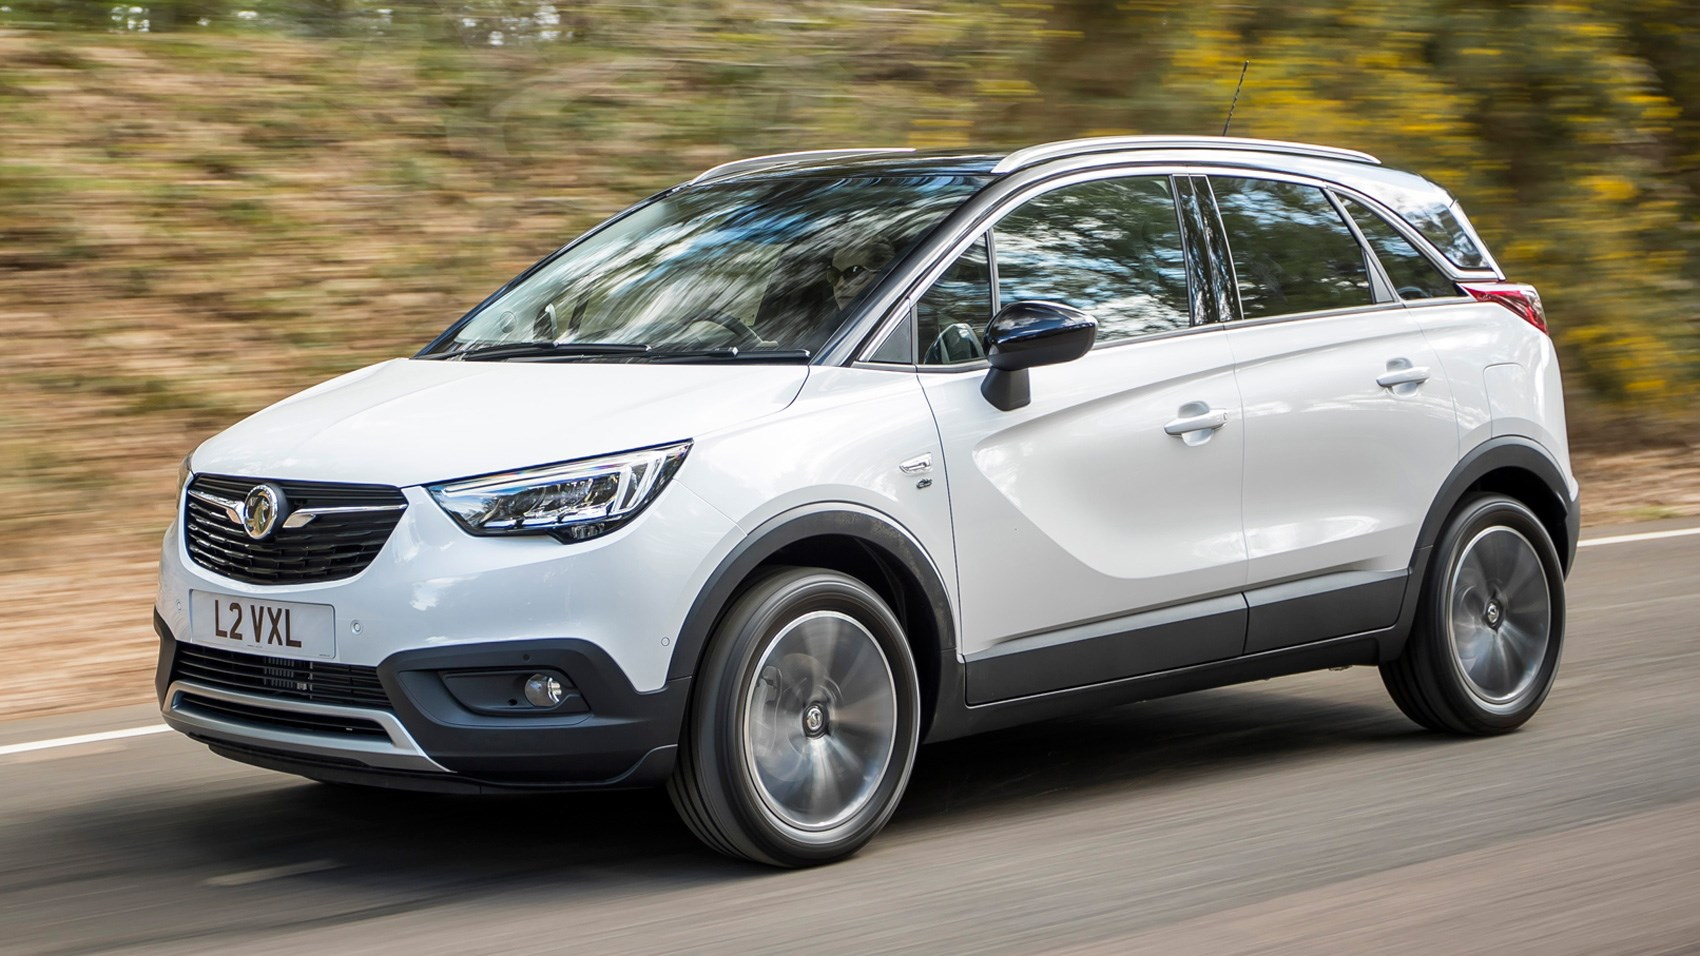 Fear Of Driving >> Vauxhall Crossland X (2017) review by CAR Magazine